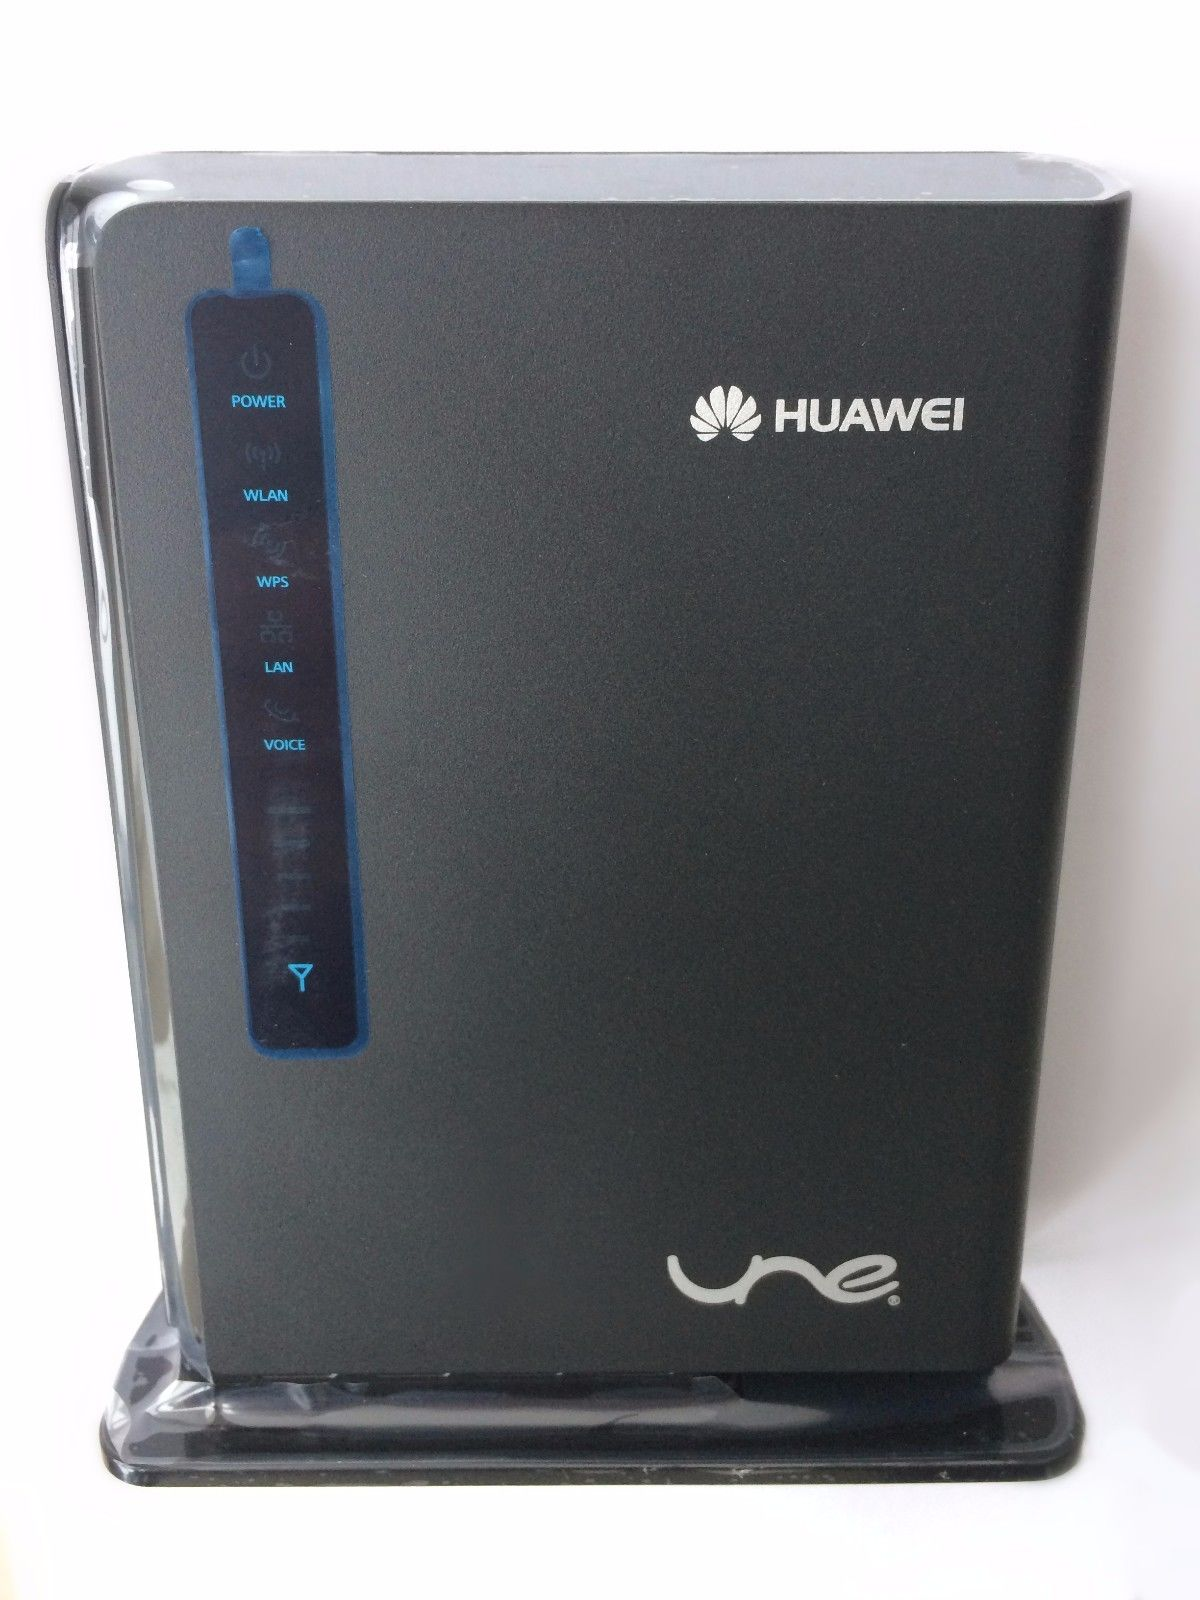 Huawei E5172s-515 150Mbps LTE 4G WIFI Router Lte FDD 2600/1900/850MHz